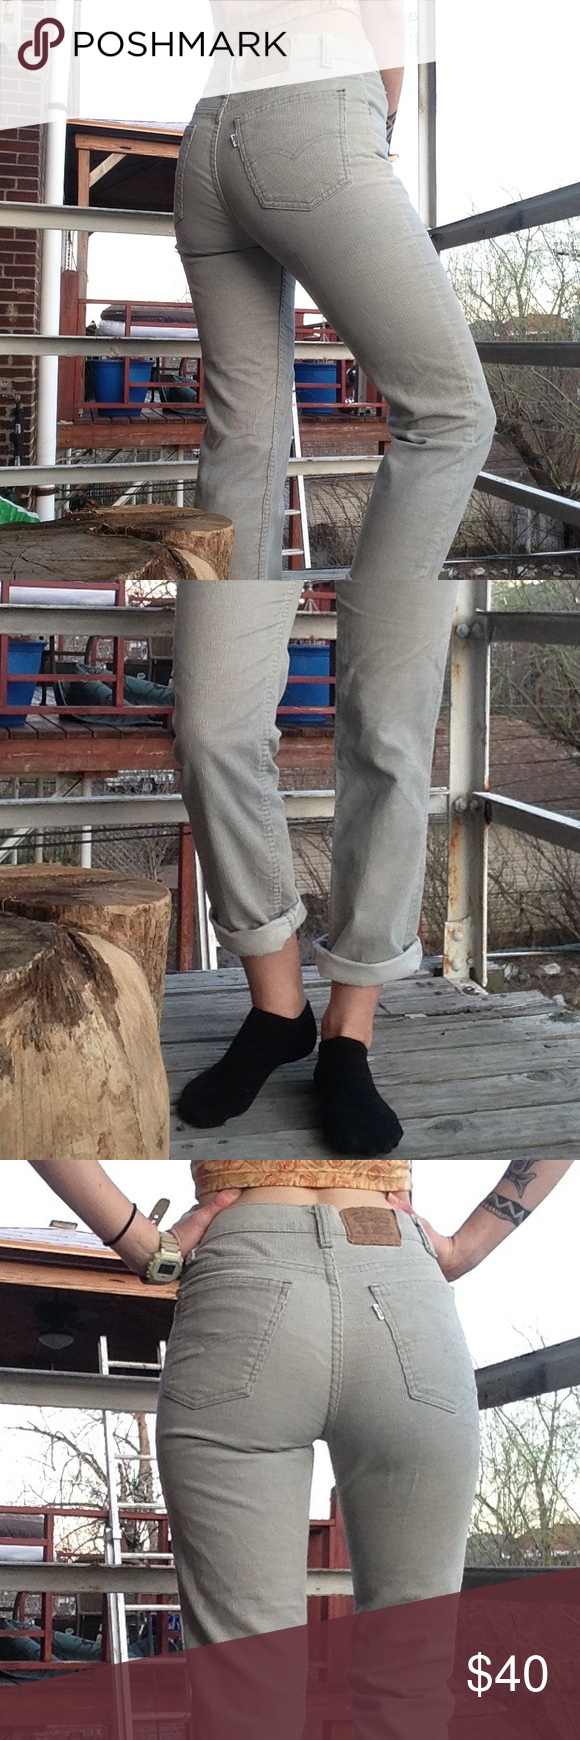 Vintage Corduroy Levi's ✨ These are super trendy right now!! Model is size 4 and around 5'7. Pants have hand stitched hem at the bottom as shown. Greyish-cream color. They say the waist is size 30 but they fit me perfectly and I'm normally a 26 in jeans. Vintage but in good condition. Levi's Jeans